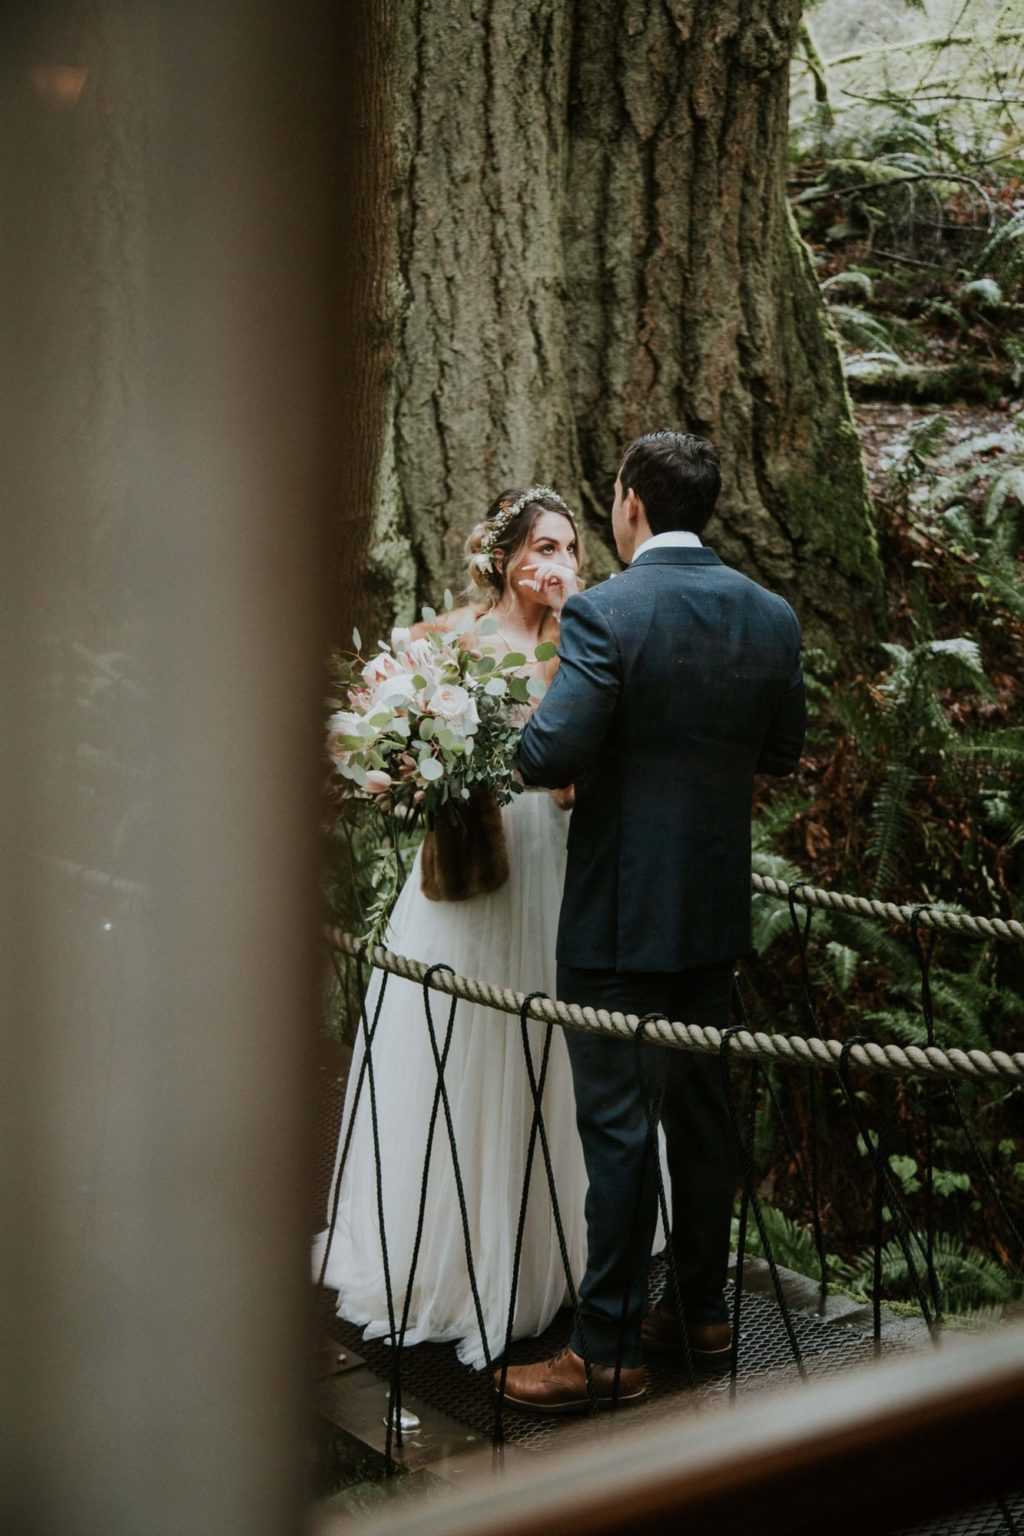 Bride emotional after her first look with groom